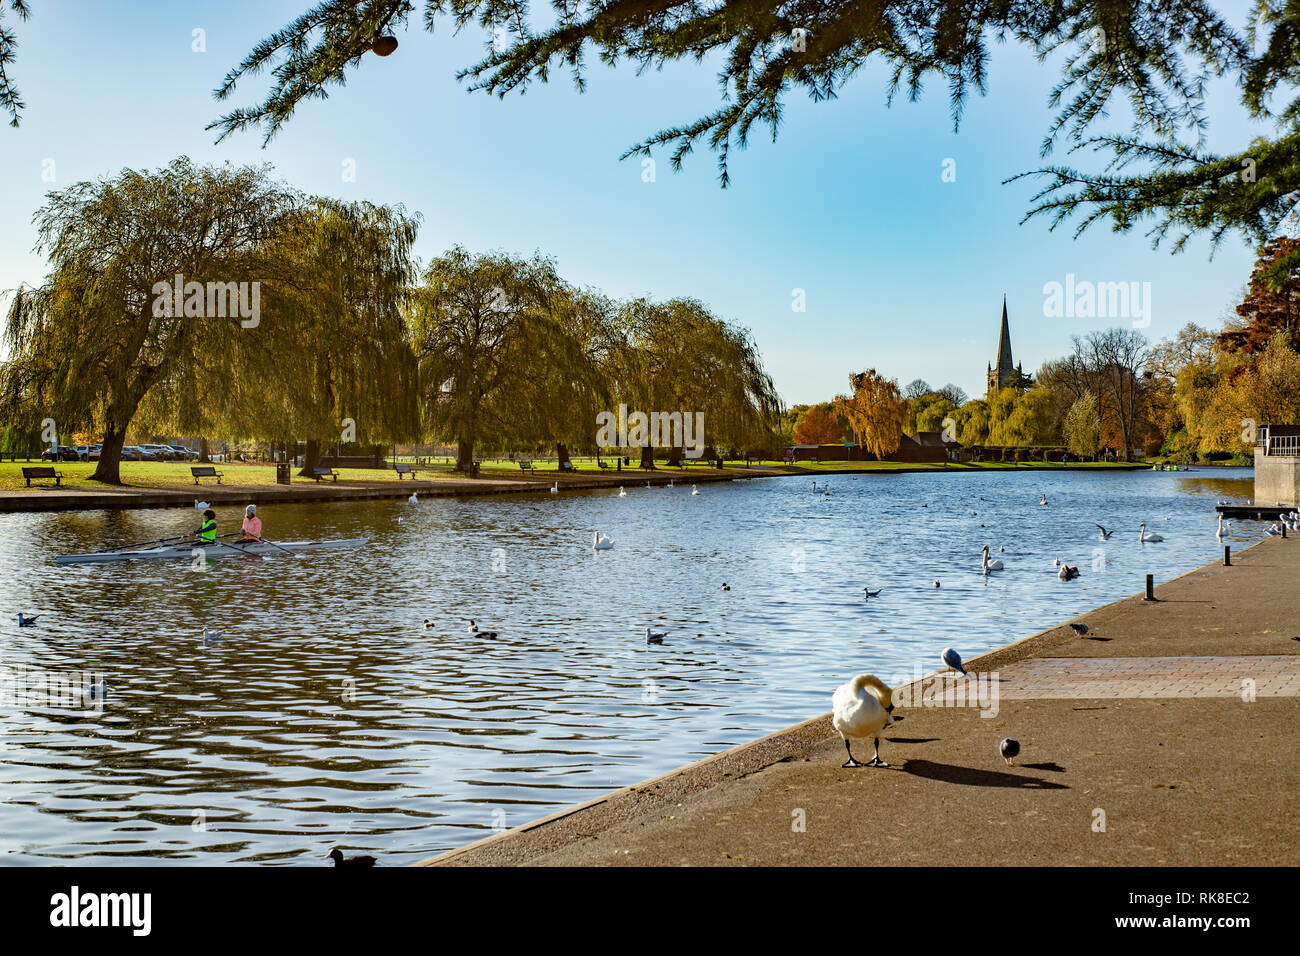 Postcard scene of the canal in Stratford Upon Avon in England. Home of William Shakespear. - Stock Image